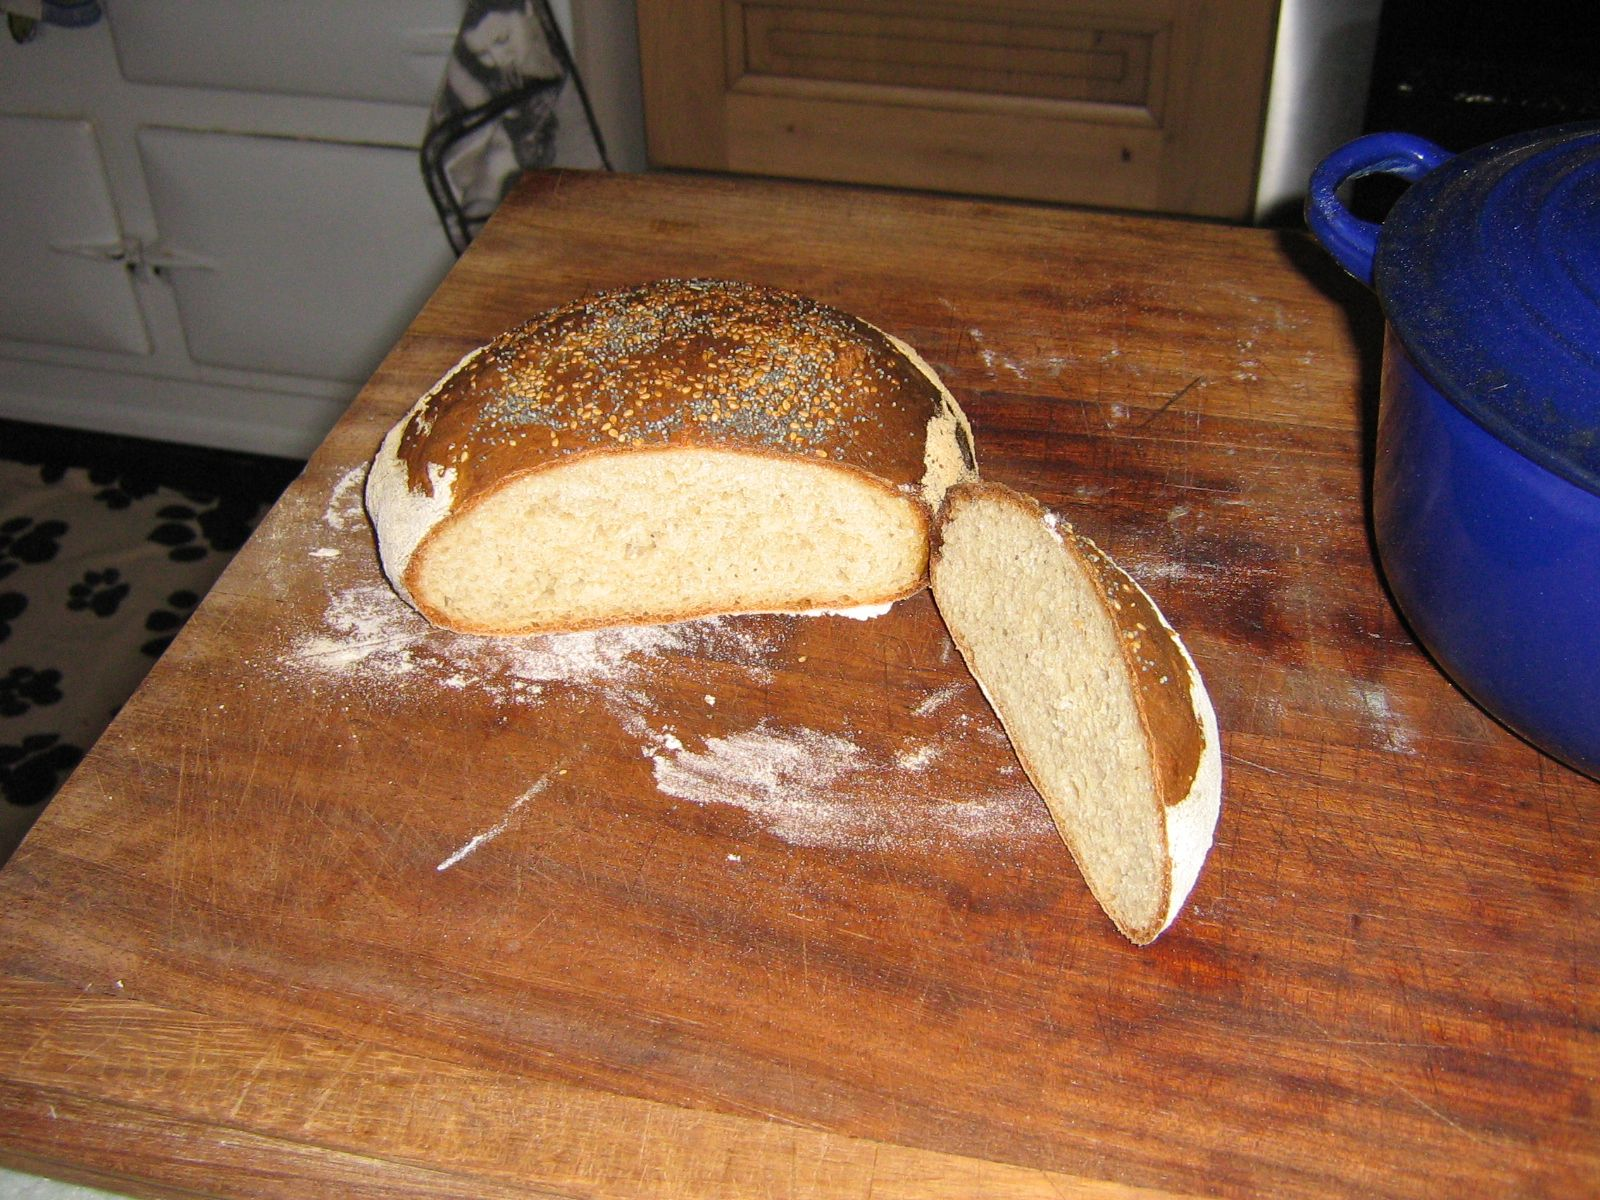 High Blean B&B Semer Water cooked no knead bread  Great crumb even though not kneaded.  http://highblean.co.uk/high-blean-bb-semer-water-no-knead-bread/